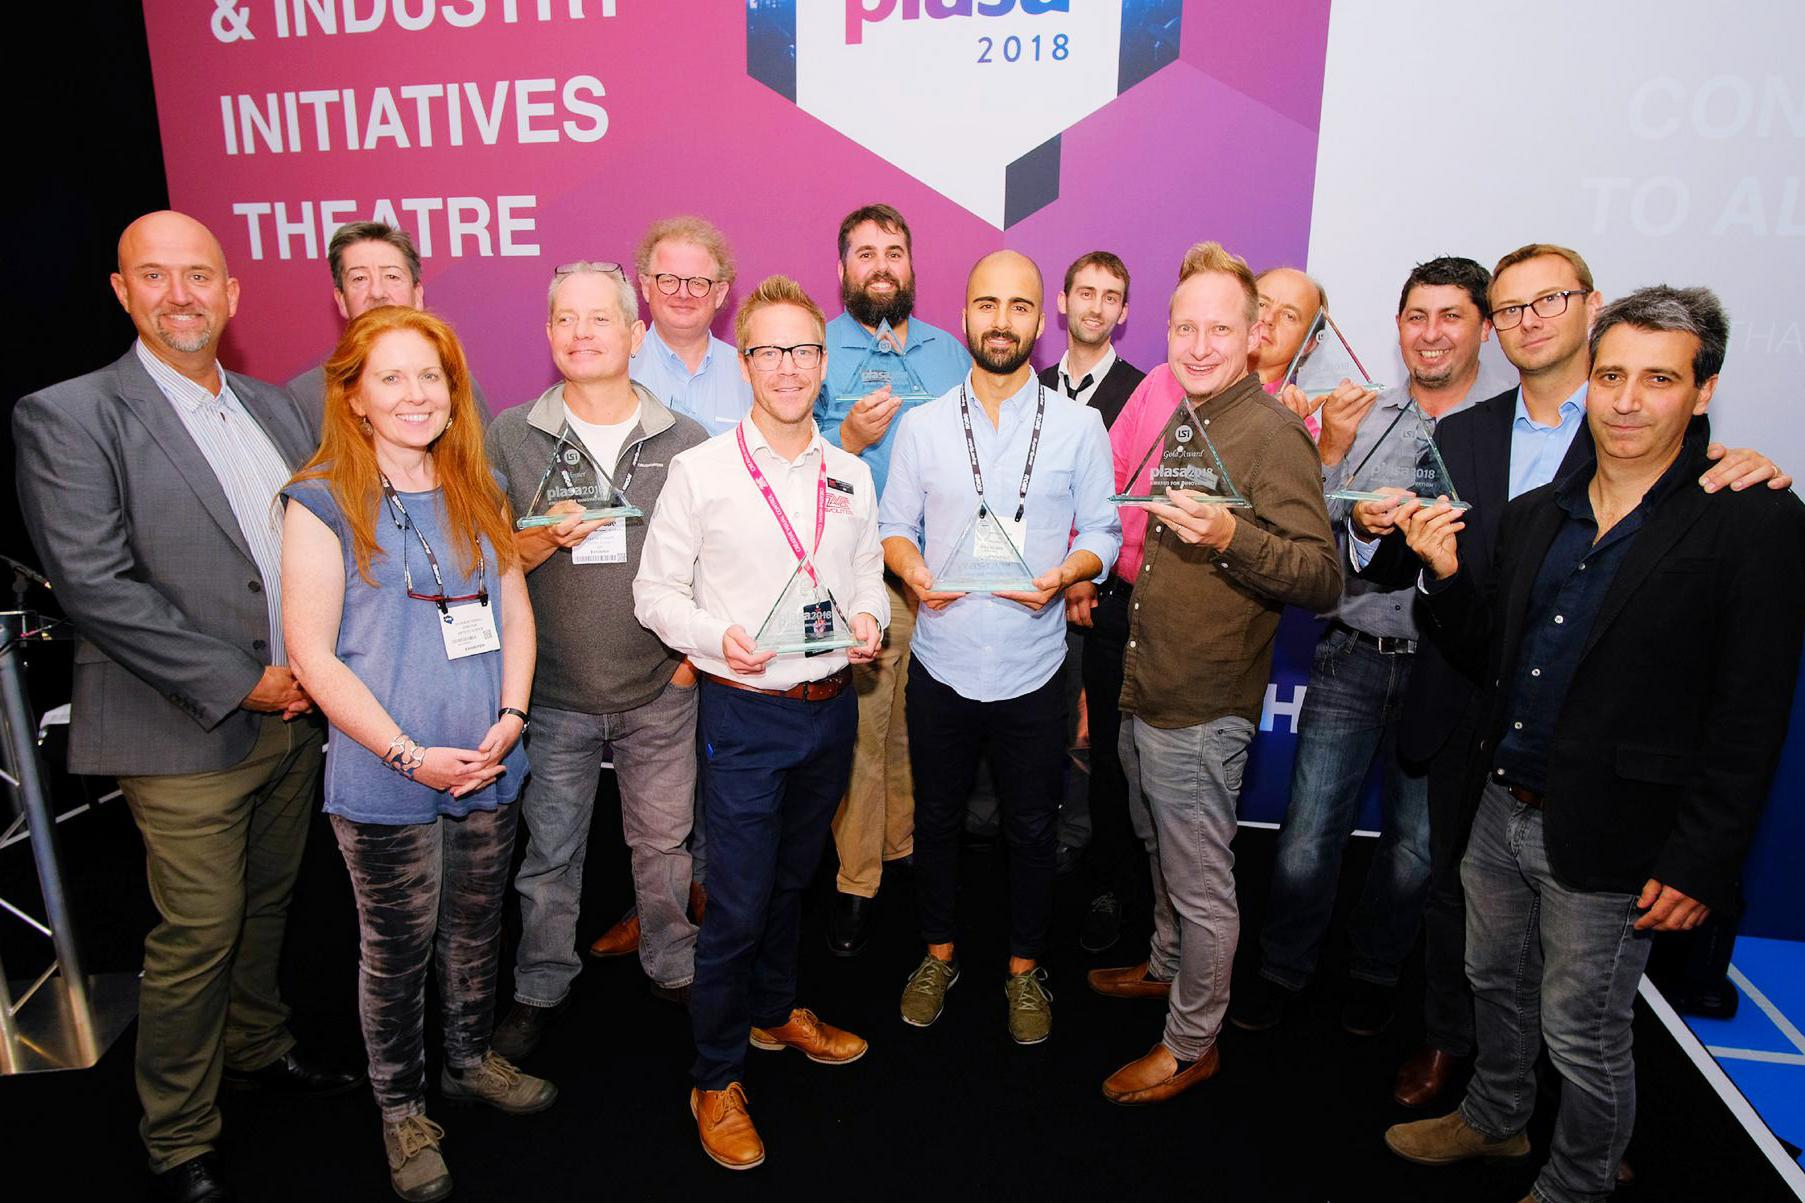 PLASA Show 2018 Innovation Award winners